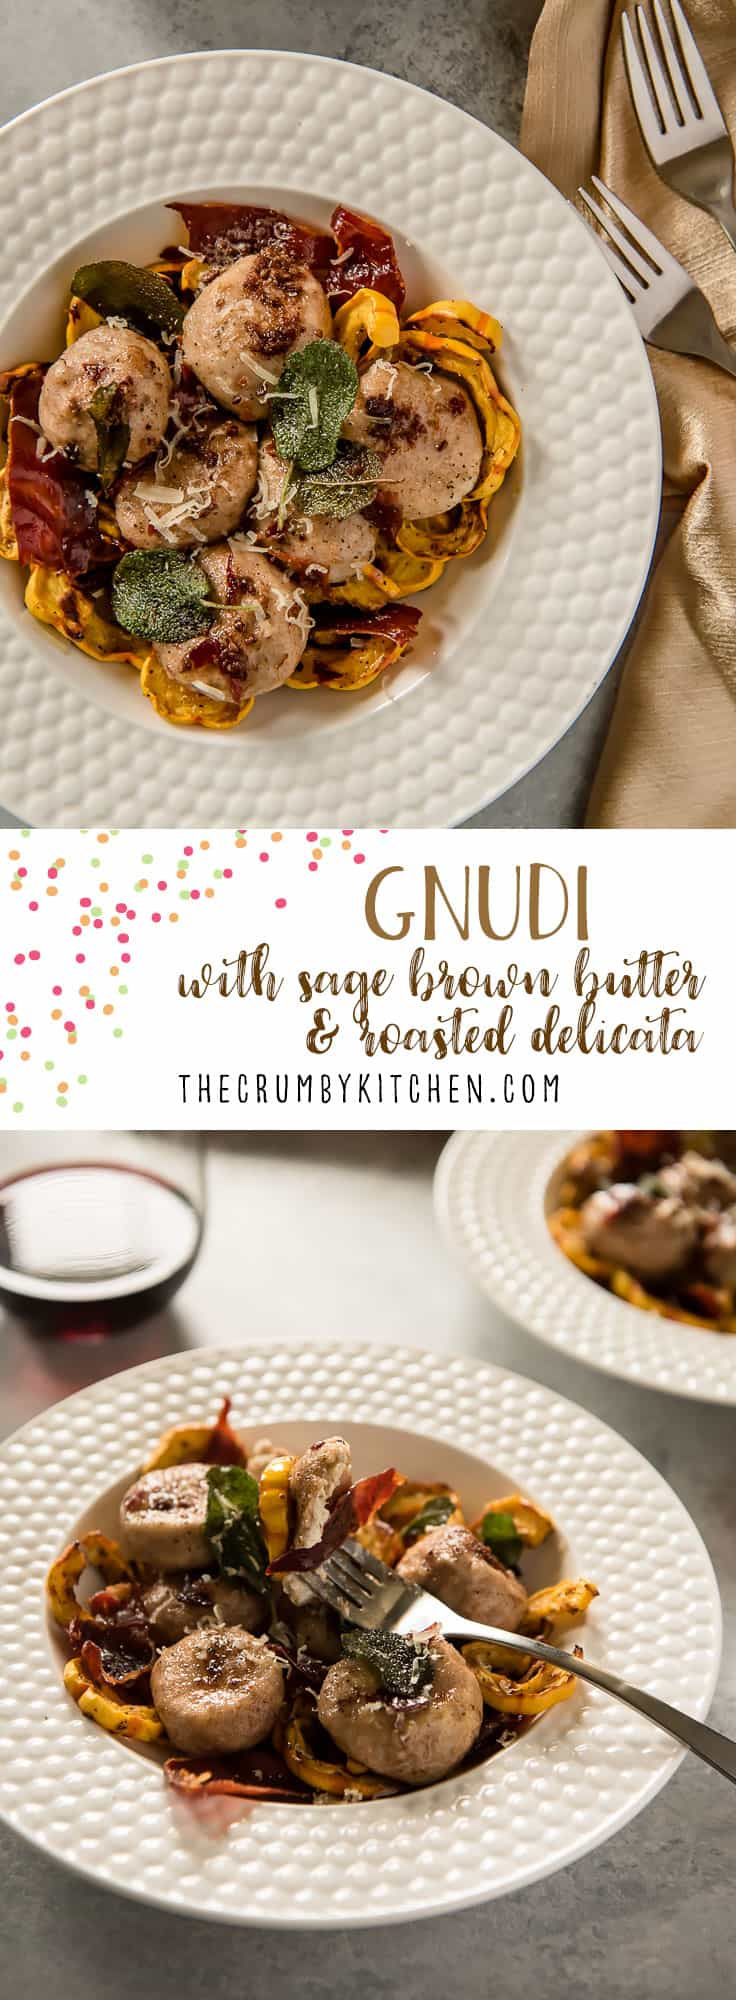 These pillowy Gnudi with Sage Brown Butter are gnocchi-like dumplings made with creamy ricotta cheese. Paired with seasonal roasted squash, herbs, and crispy prosciutto, it will be a welcome side dish on your table!